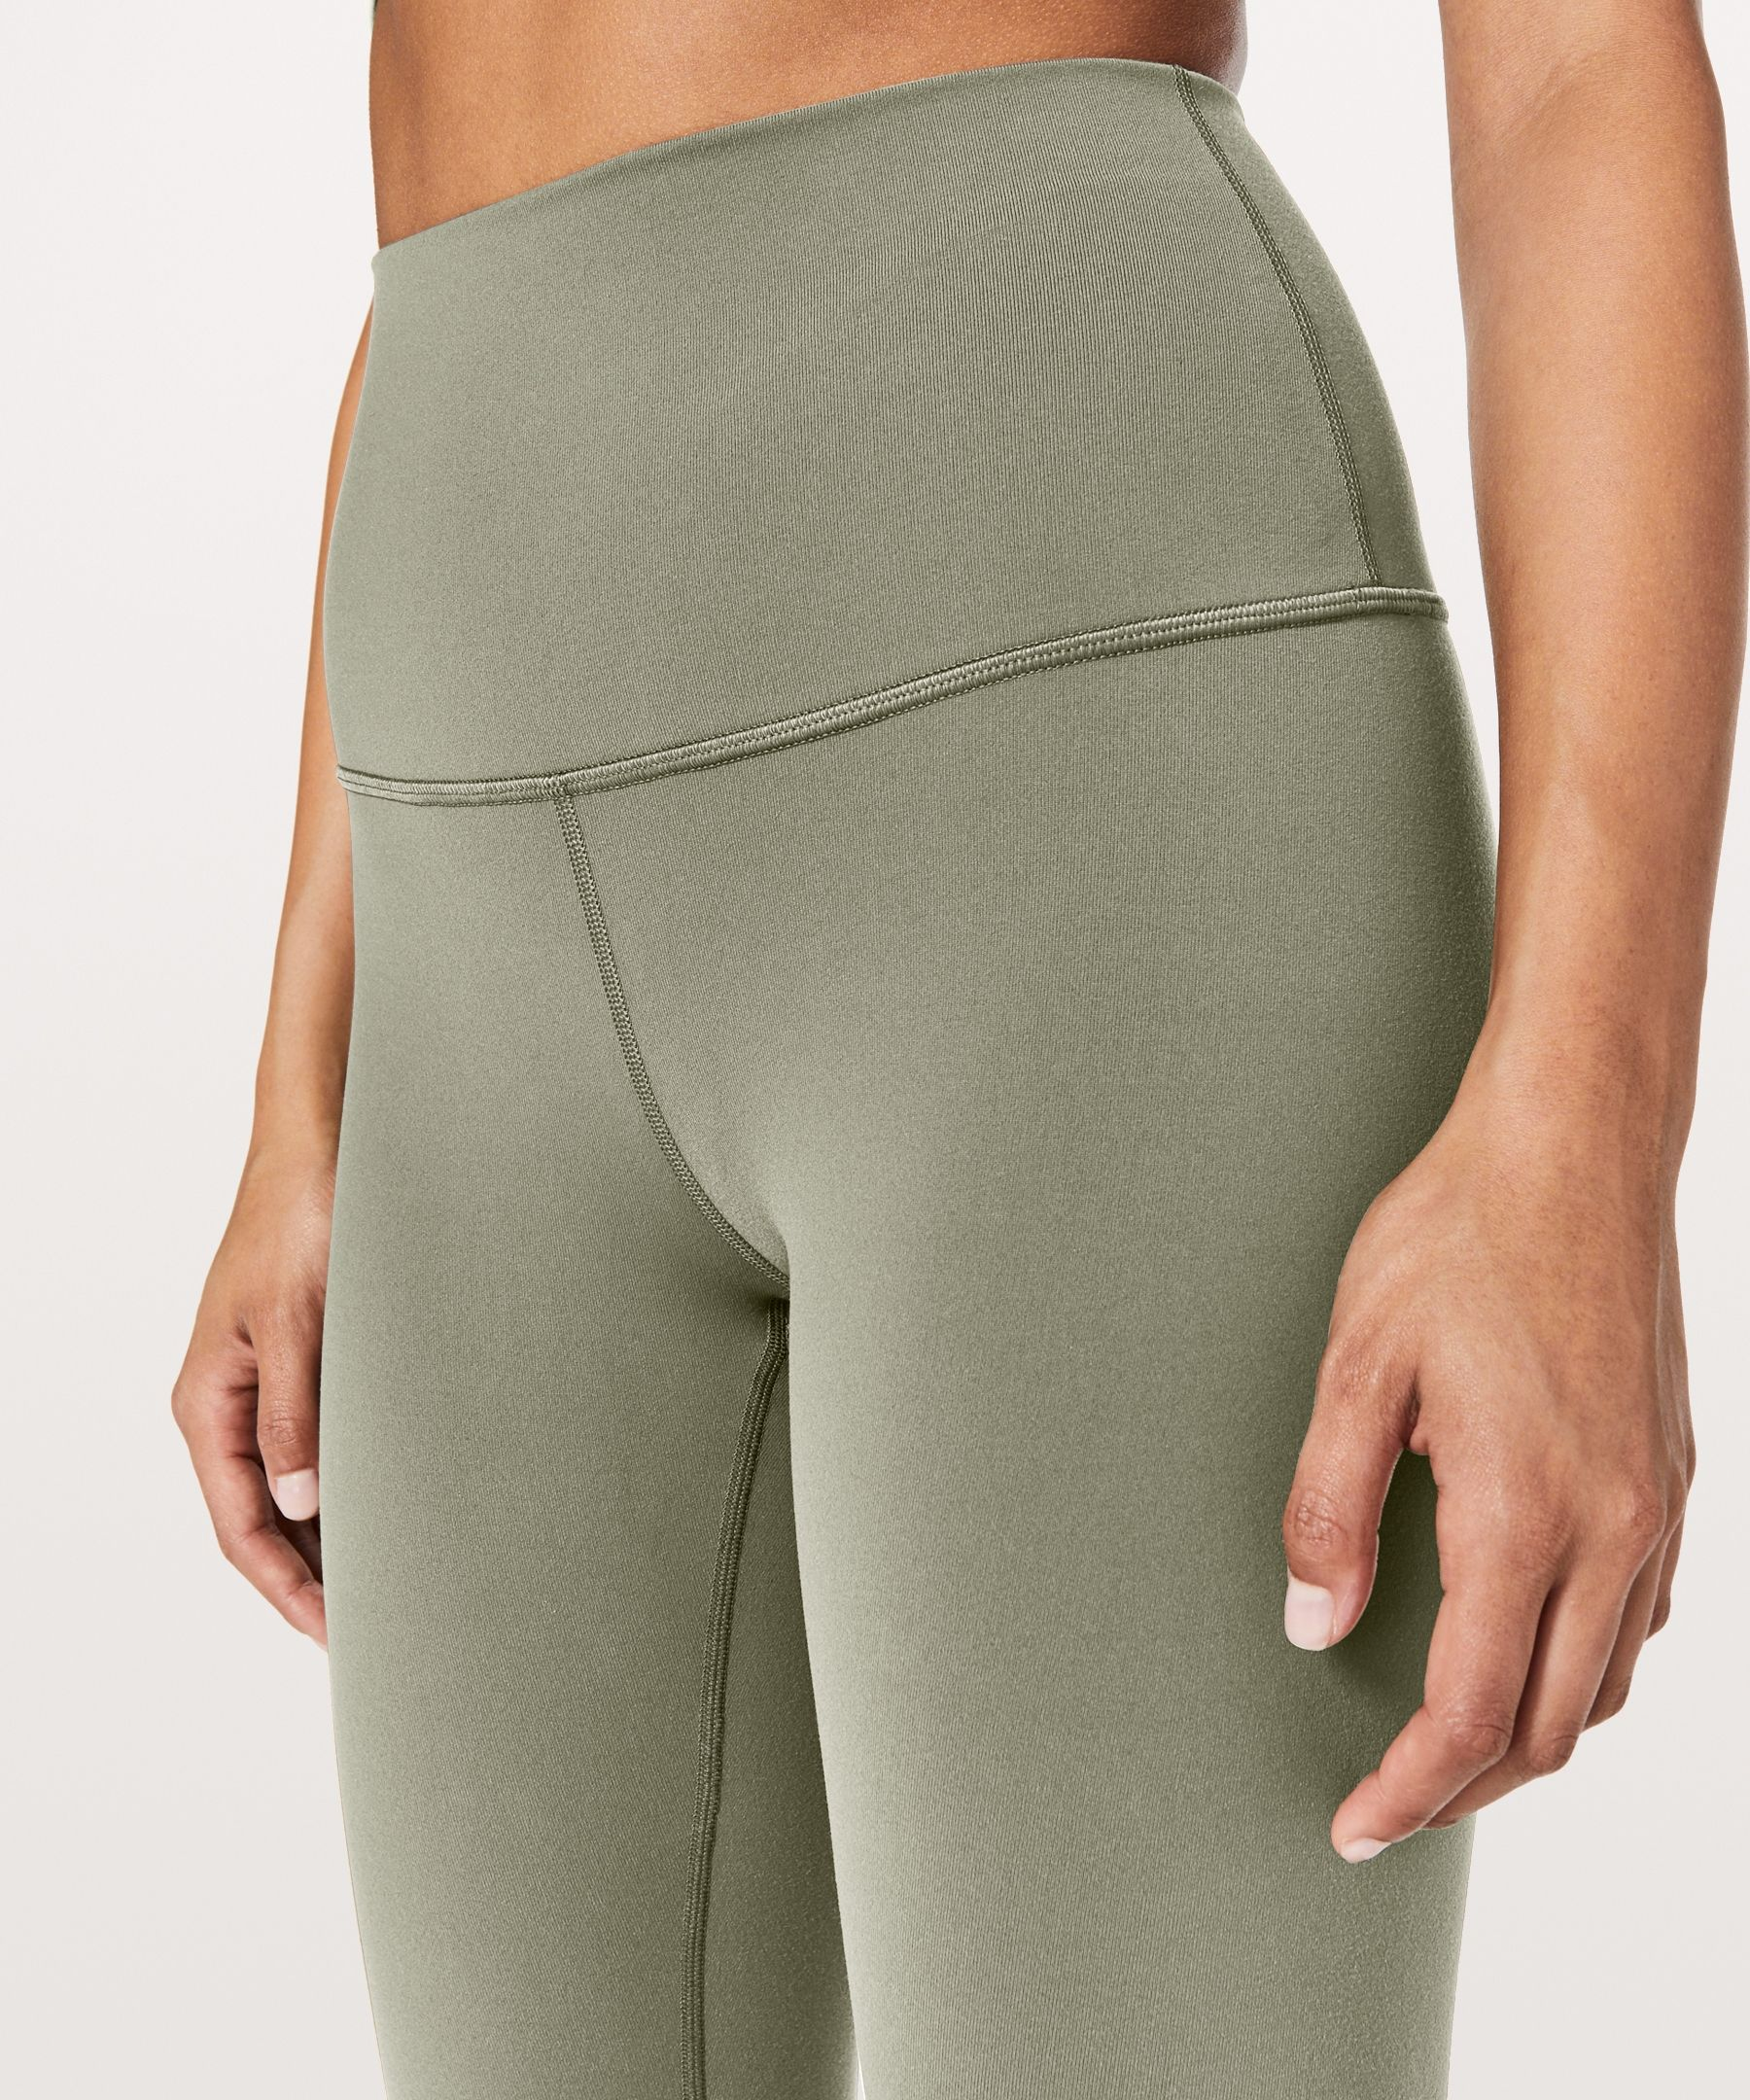 71c0b8f9f Wunder Under Super Hi-Rise Tight Full-On Luon Online Only 28